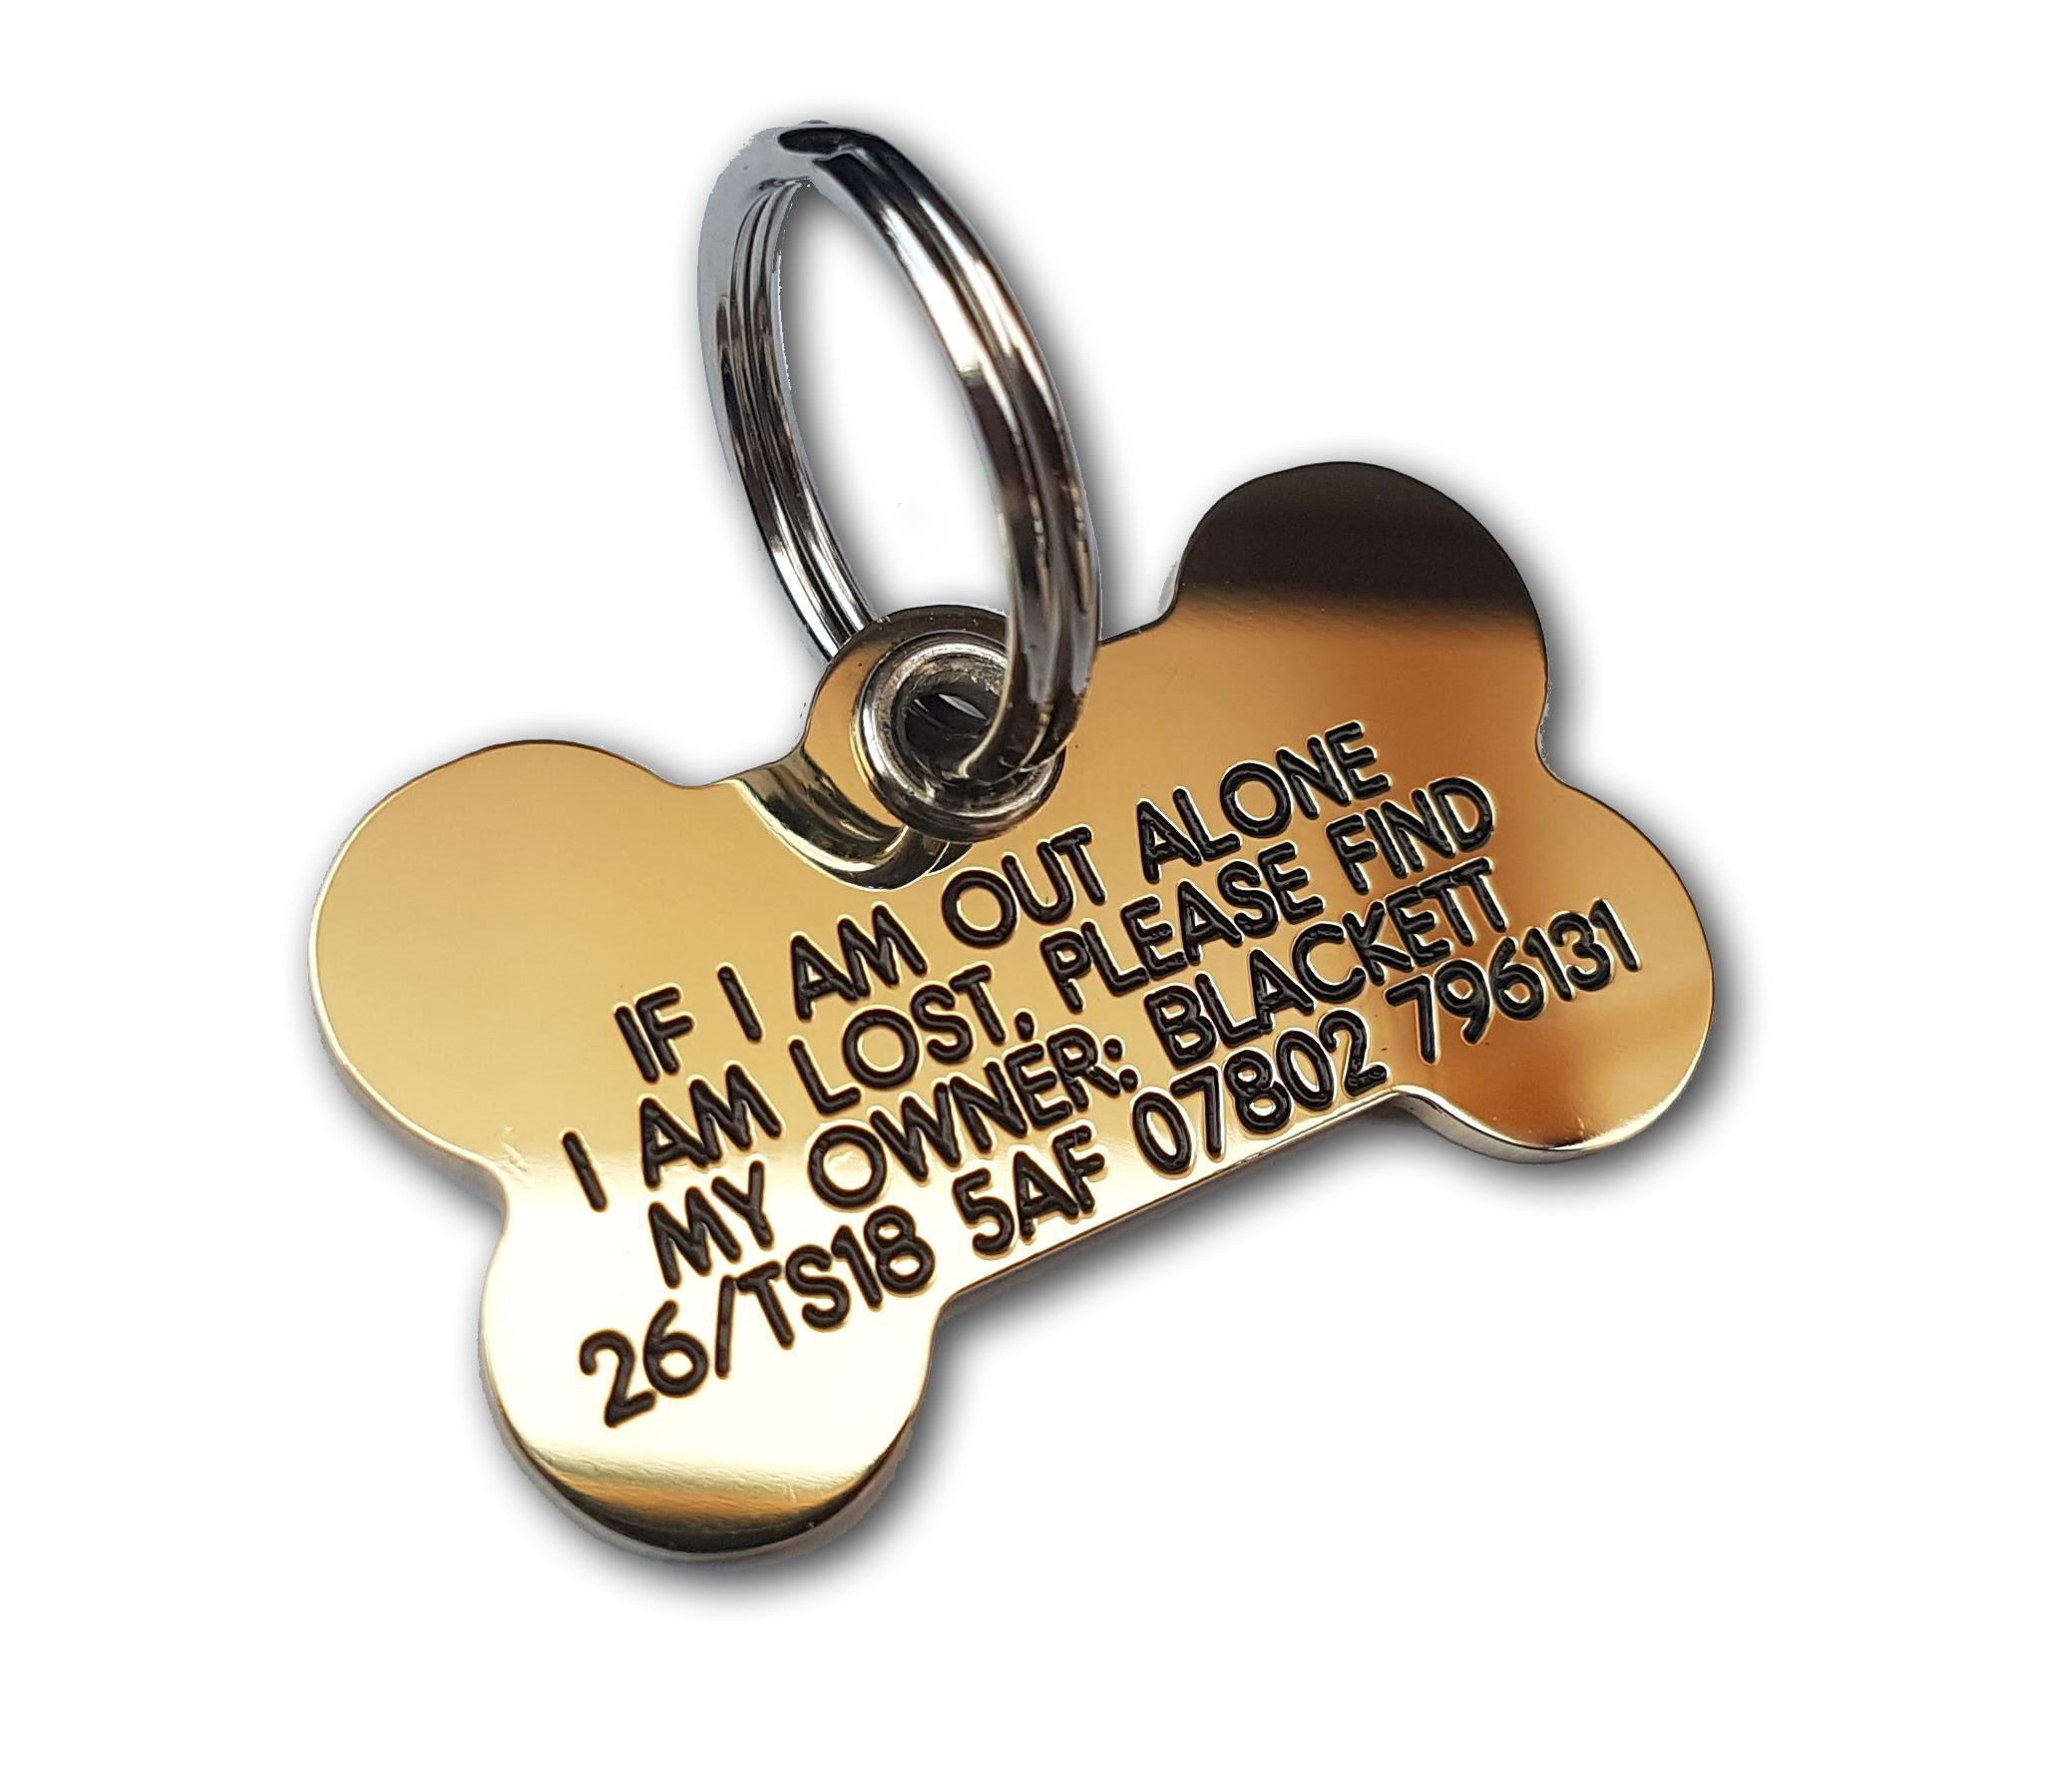 REINFORCED deeply engraved solid brass Bone dog tag